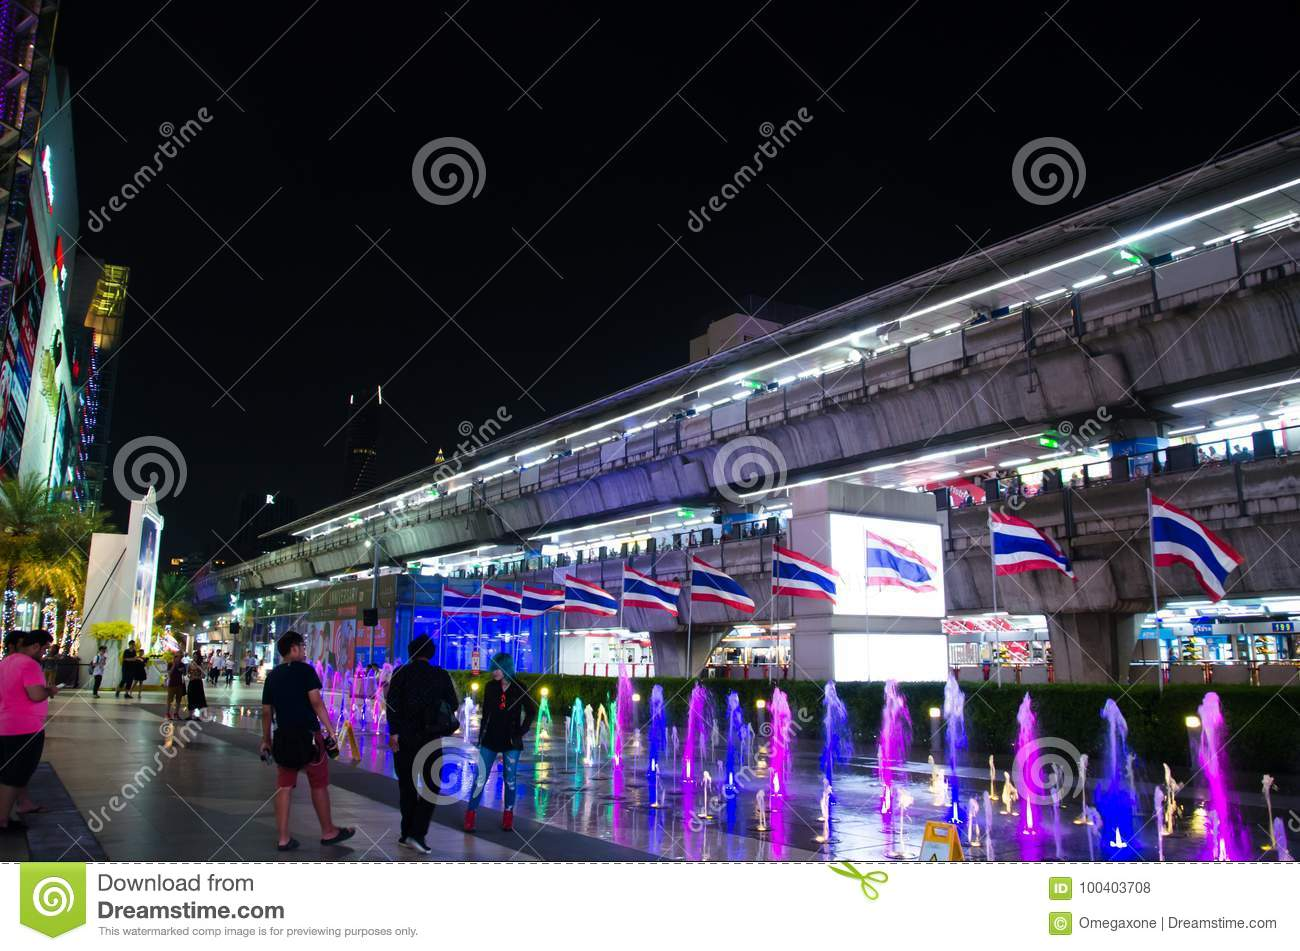 The sky train and front gate at center of siam paragon pride of the sky train and front gate at center of siam paragon pride of bangkok thailand gumiabroncs Gallery